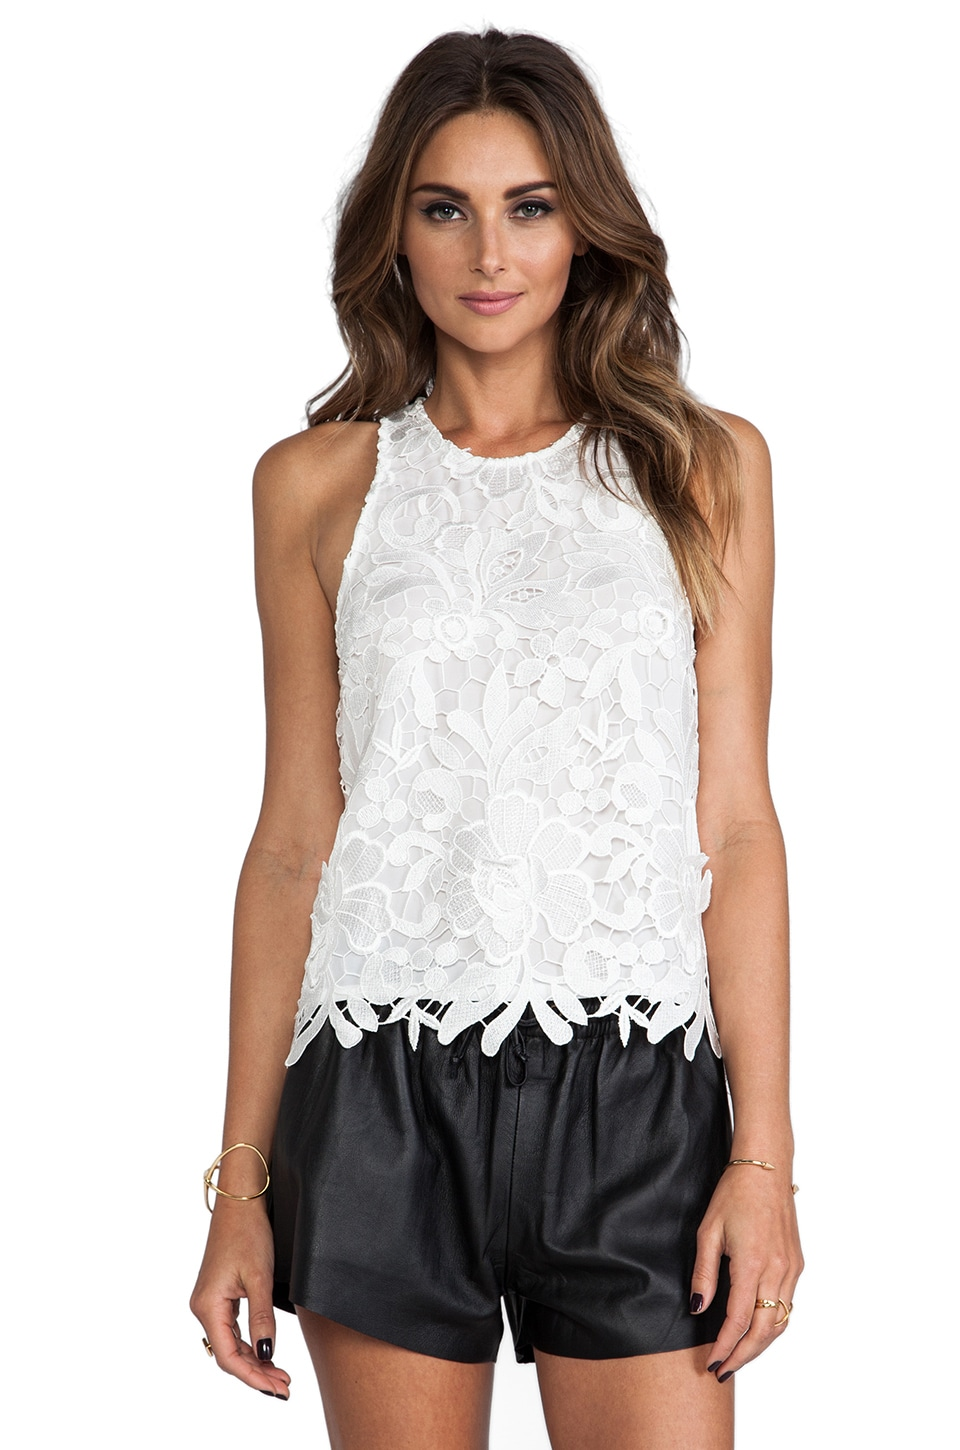 C/MEO Spellbound Top in White